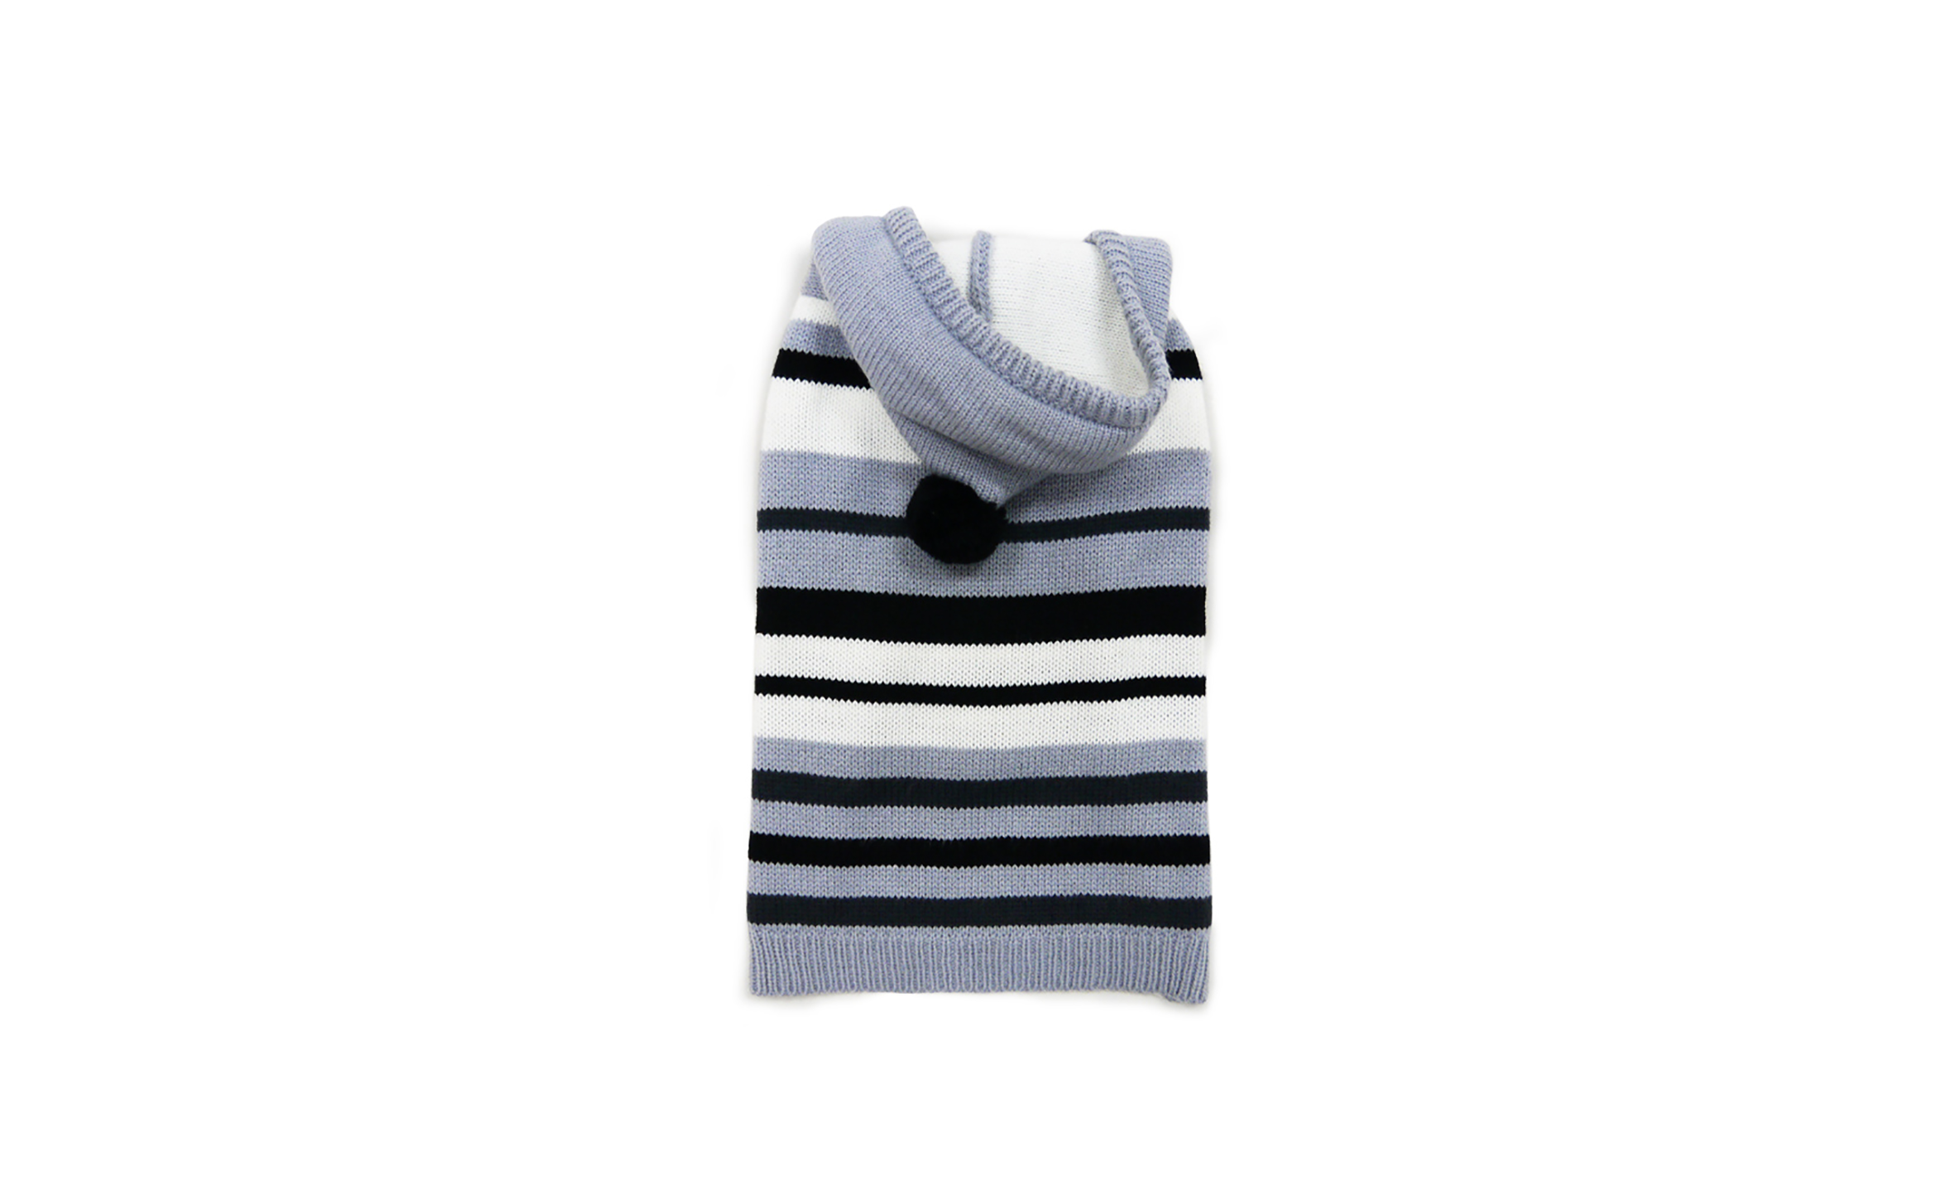 Uneven Stripes Sweater by Dogo